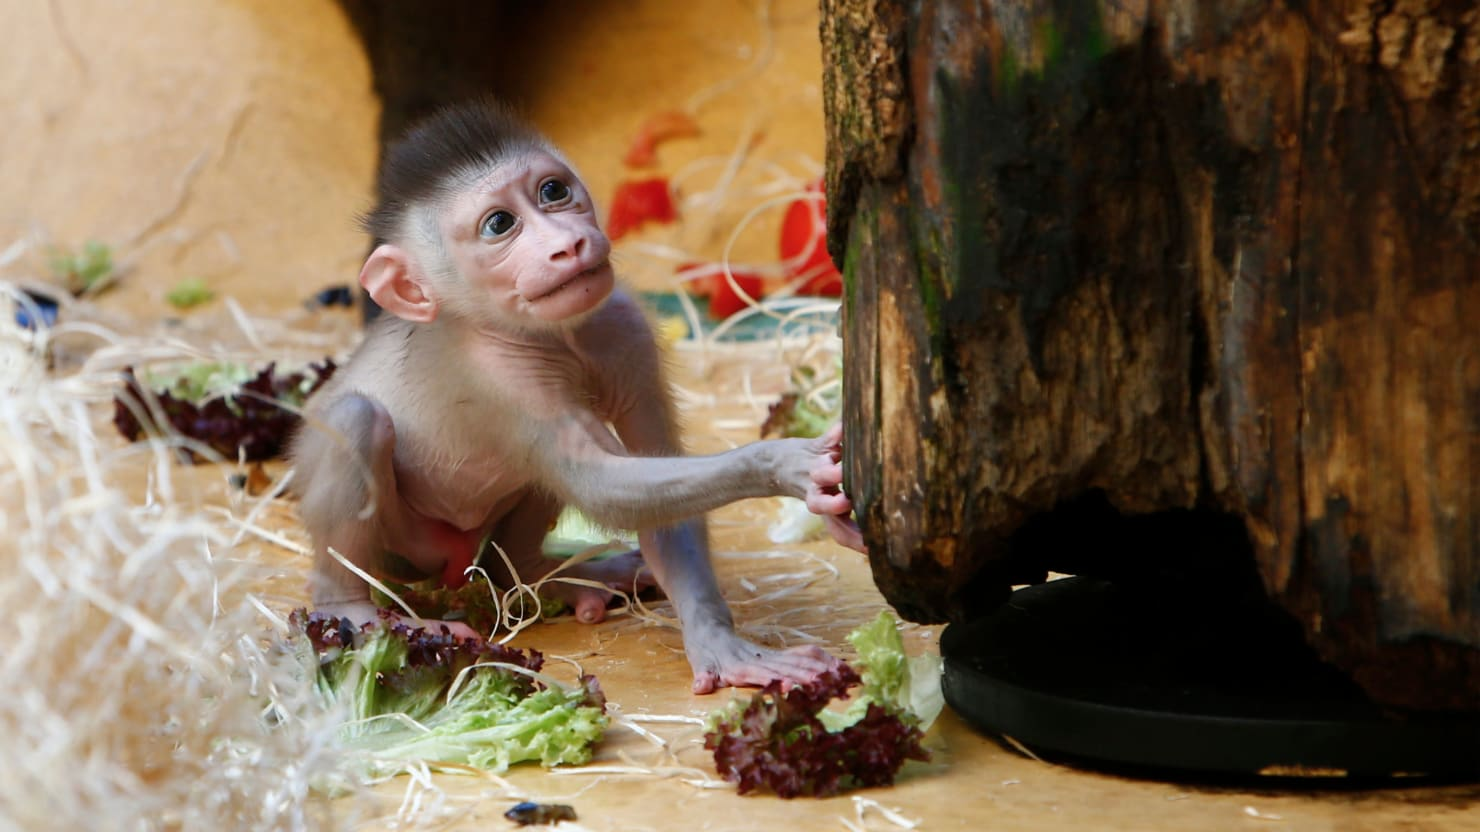 Chinese Scientists Defend Implanting Human Gene in Baby Monkey Brain